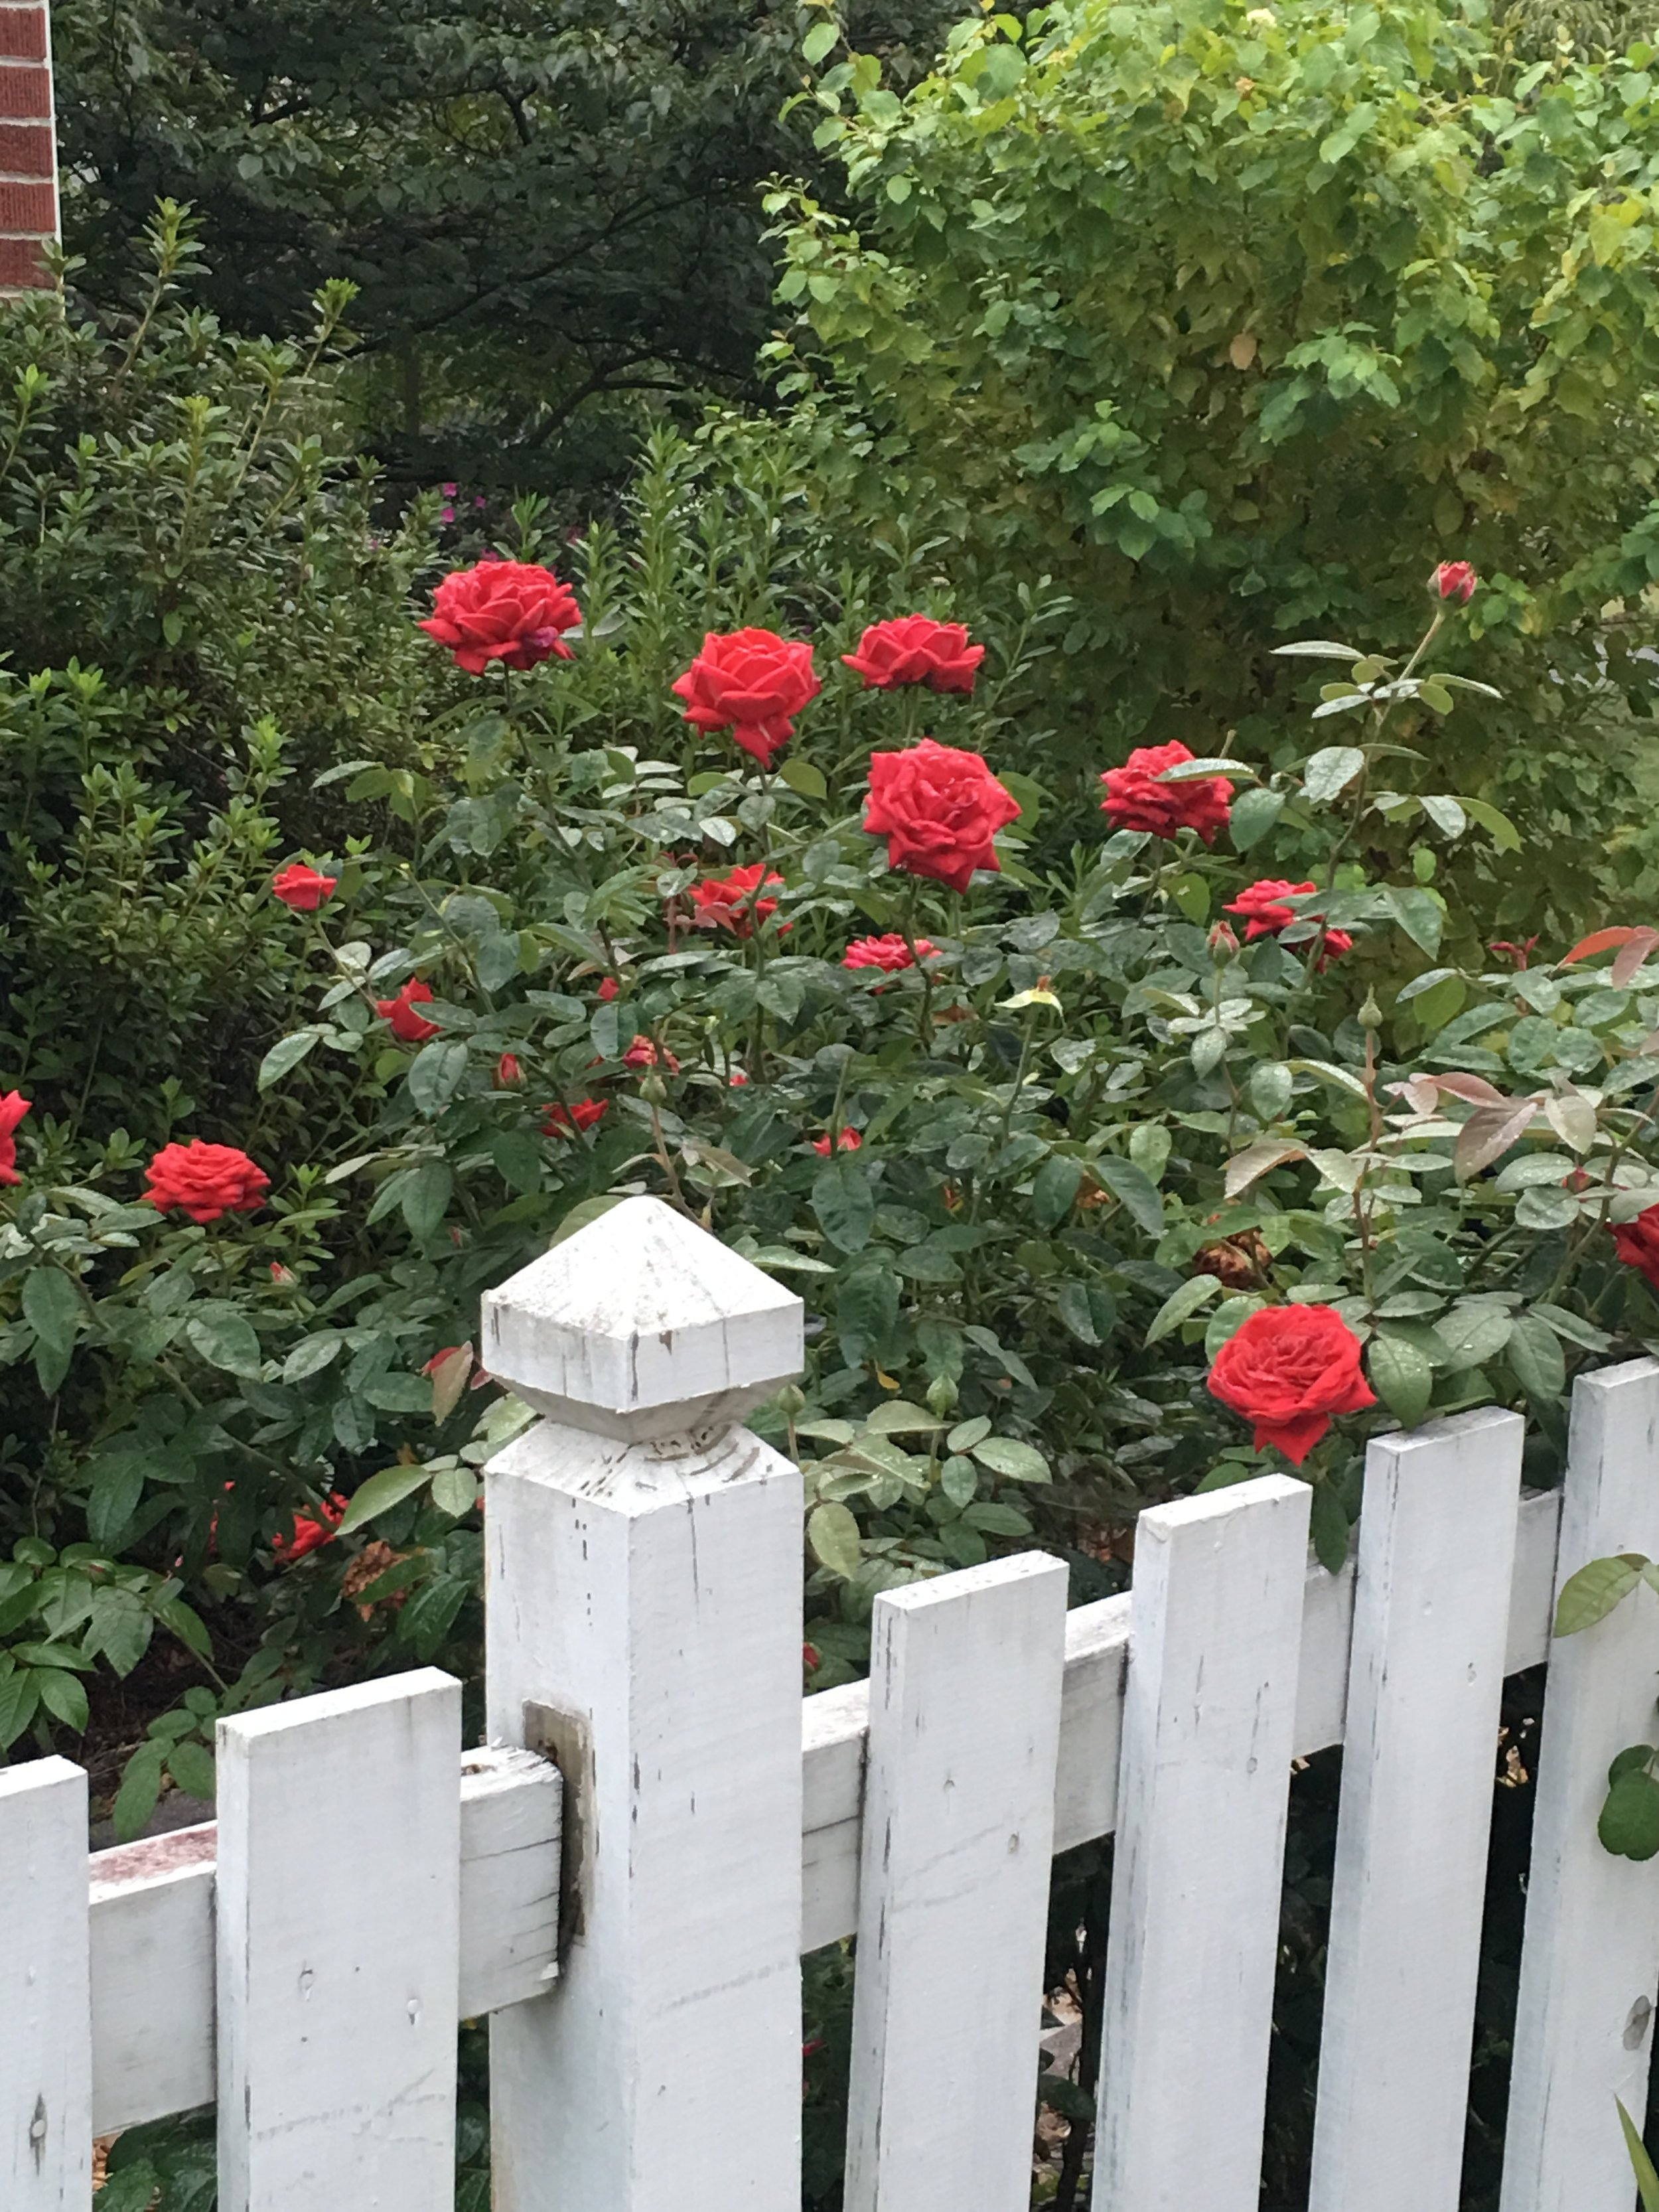 Shrub roses have revolutionized color in the garden. Blooming anywhere from 3x a season to continual bloom, they're more disease resistant and require little care for the color they offer.